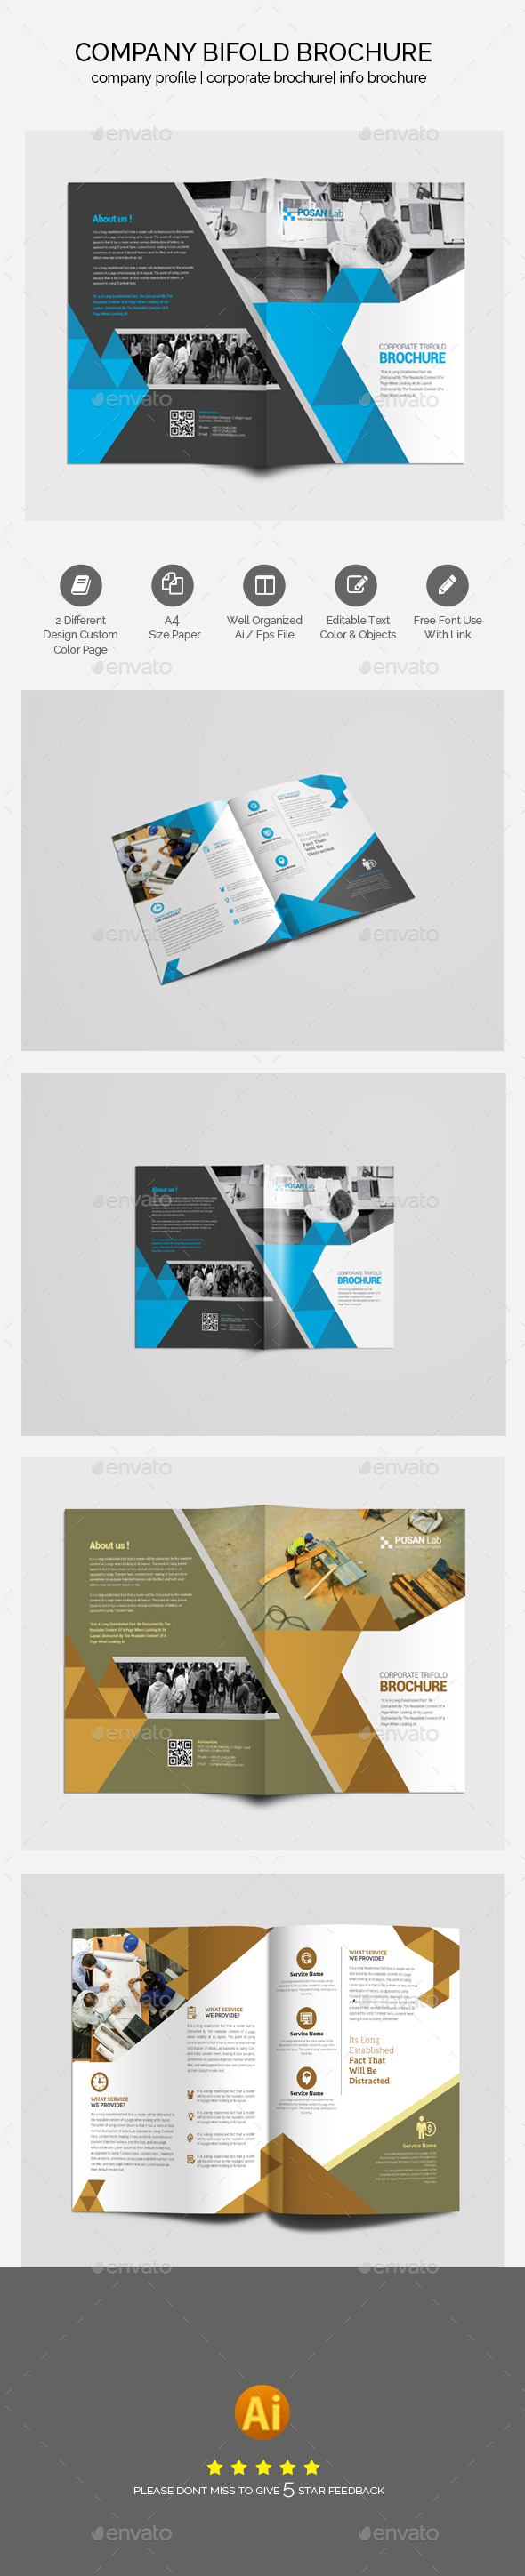 Professional Bifold Business Brochure Template - Brochures Print Templates